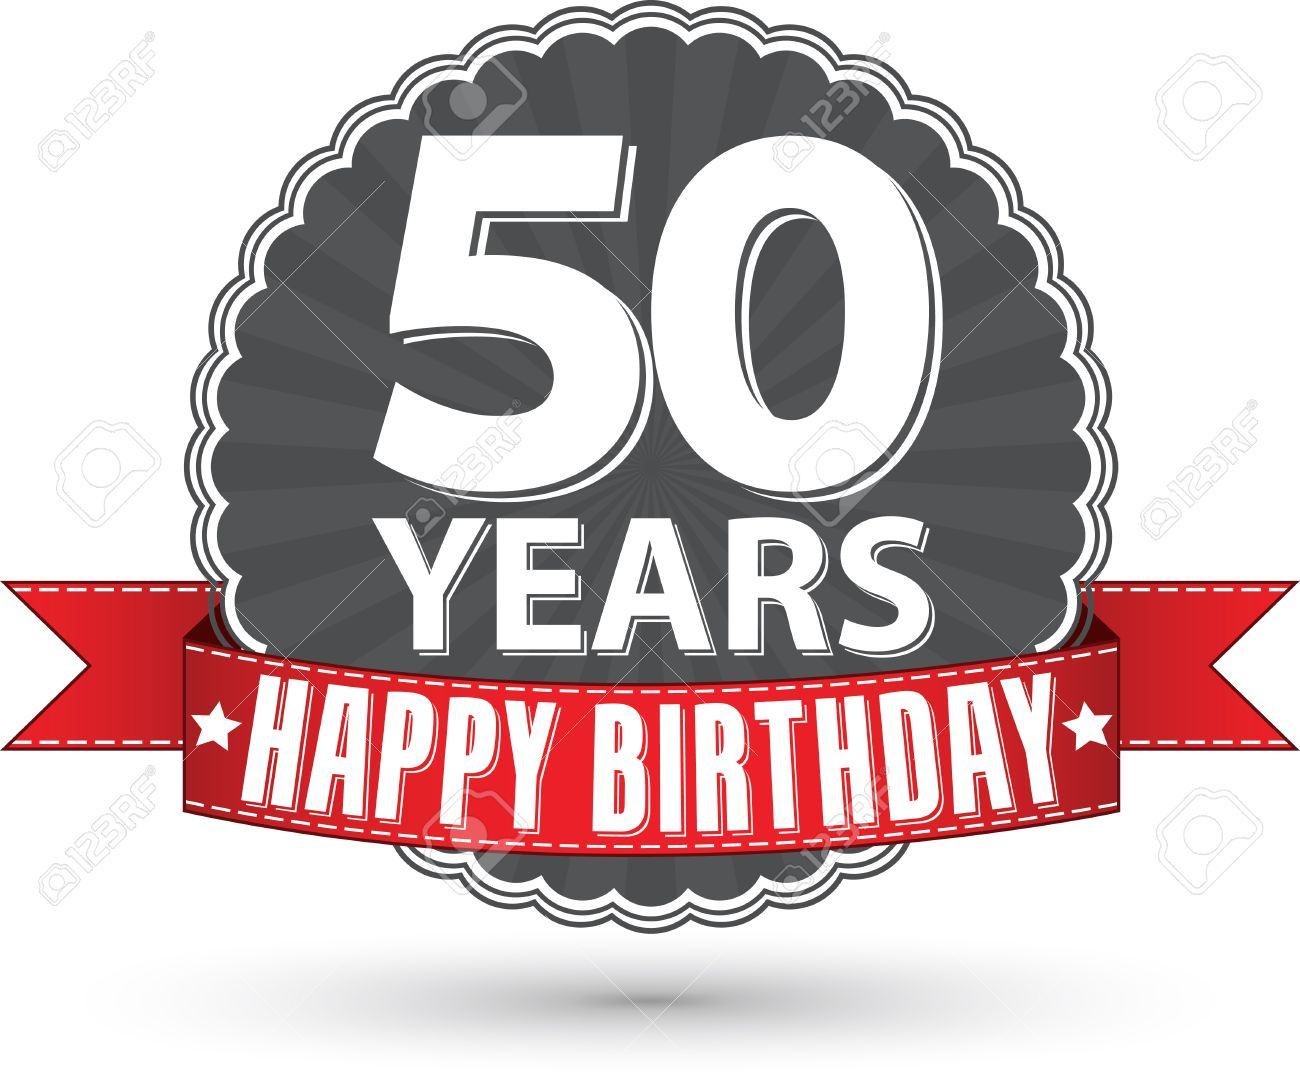 Happy Birthday 50 Years Retro Label With Red Ribbon Stock Vector